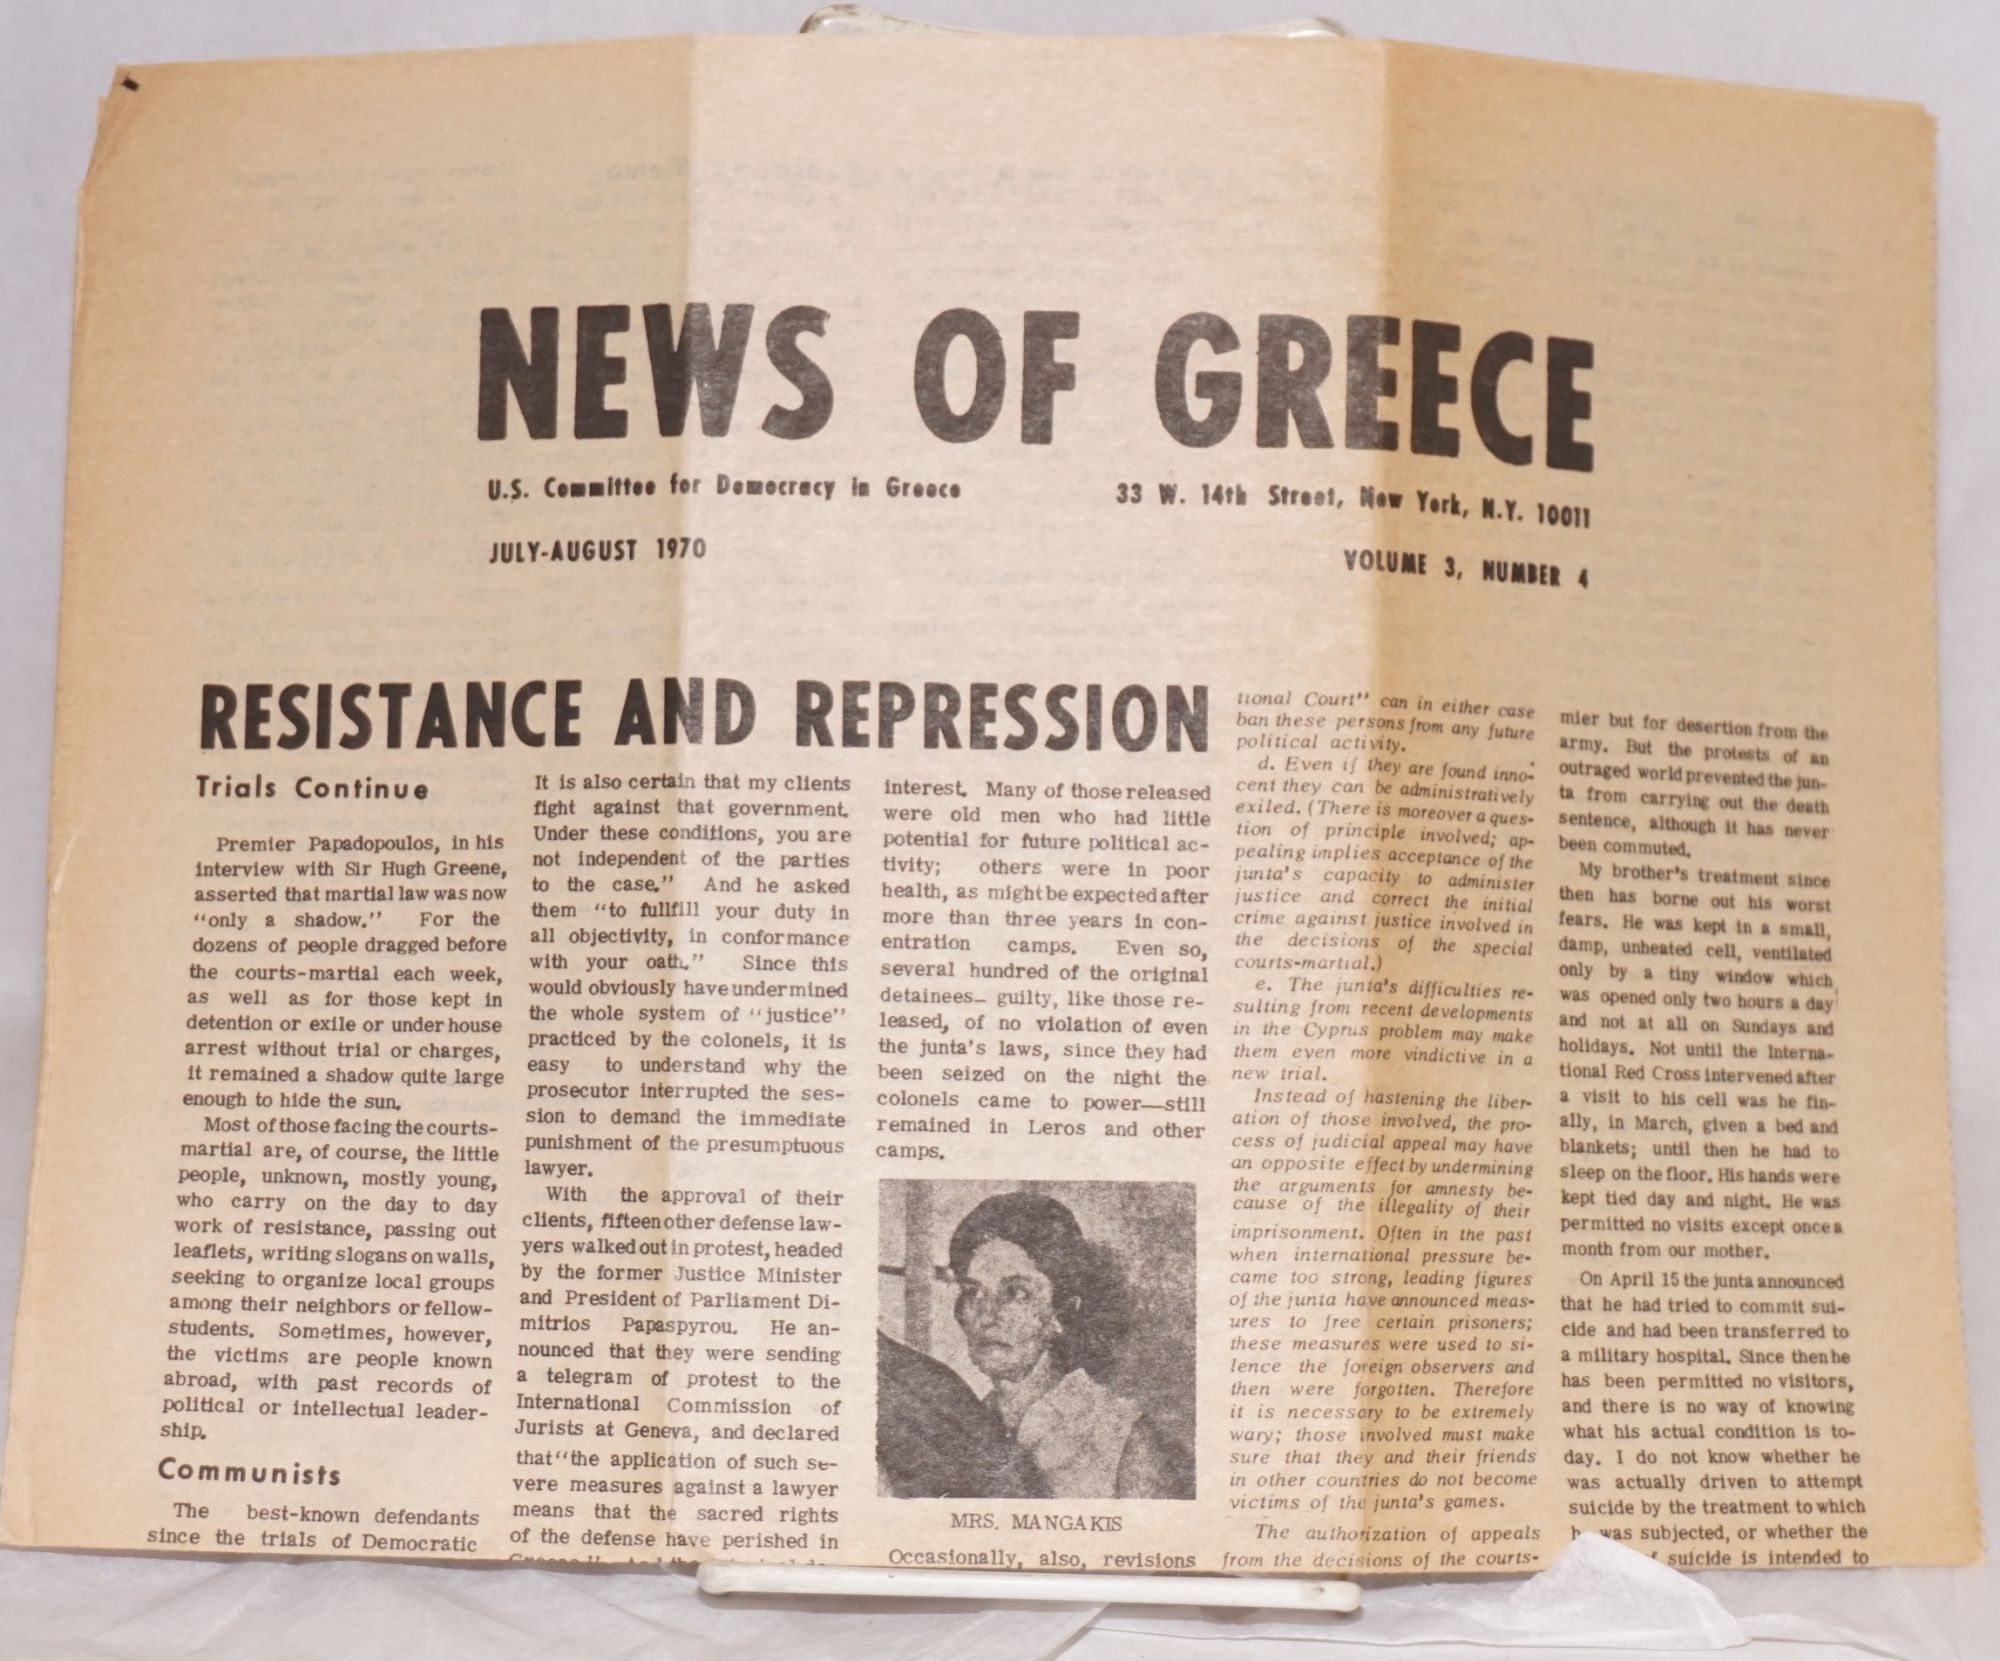 News of Greece  Vol  3 no  4 (July-August